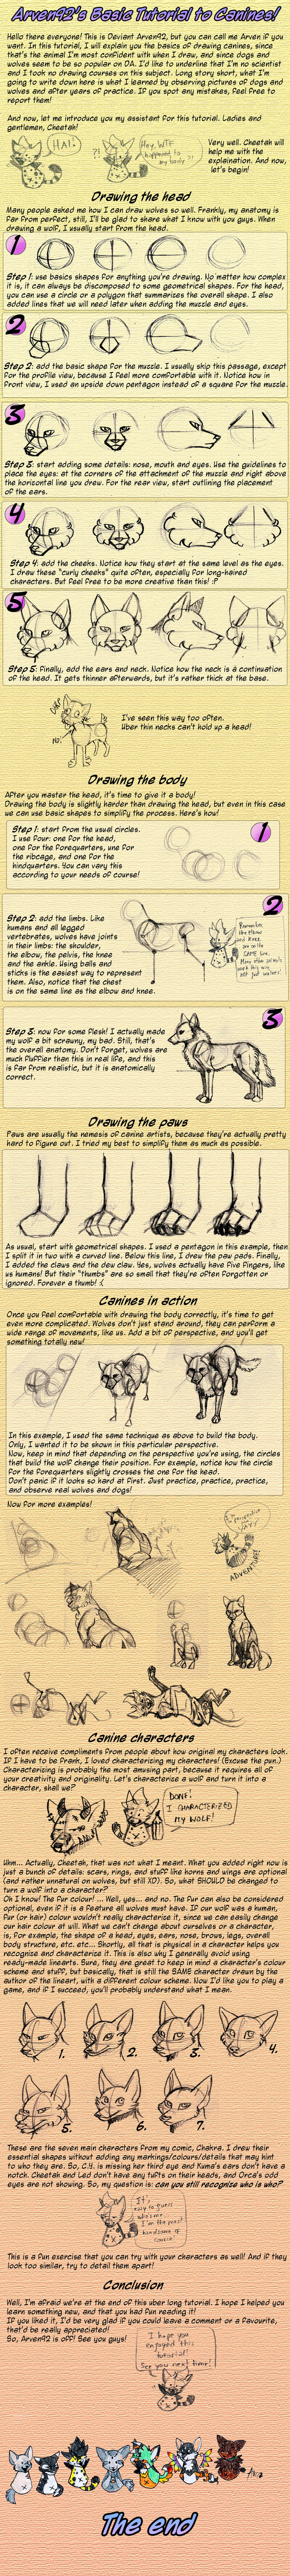 Arven's Basic Tutorial To CANINES by ARVEN92